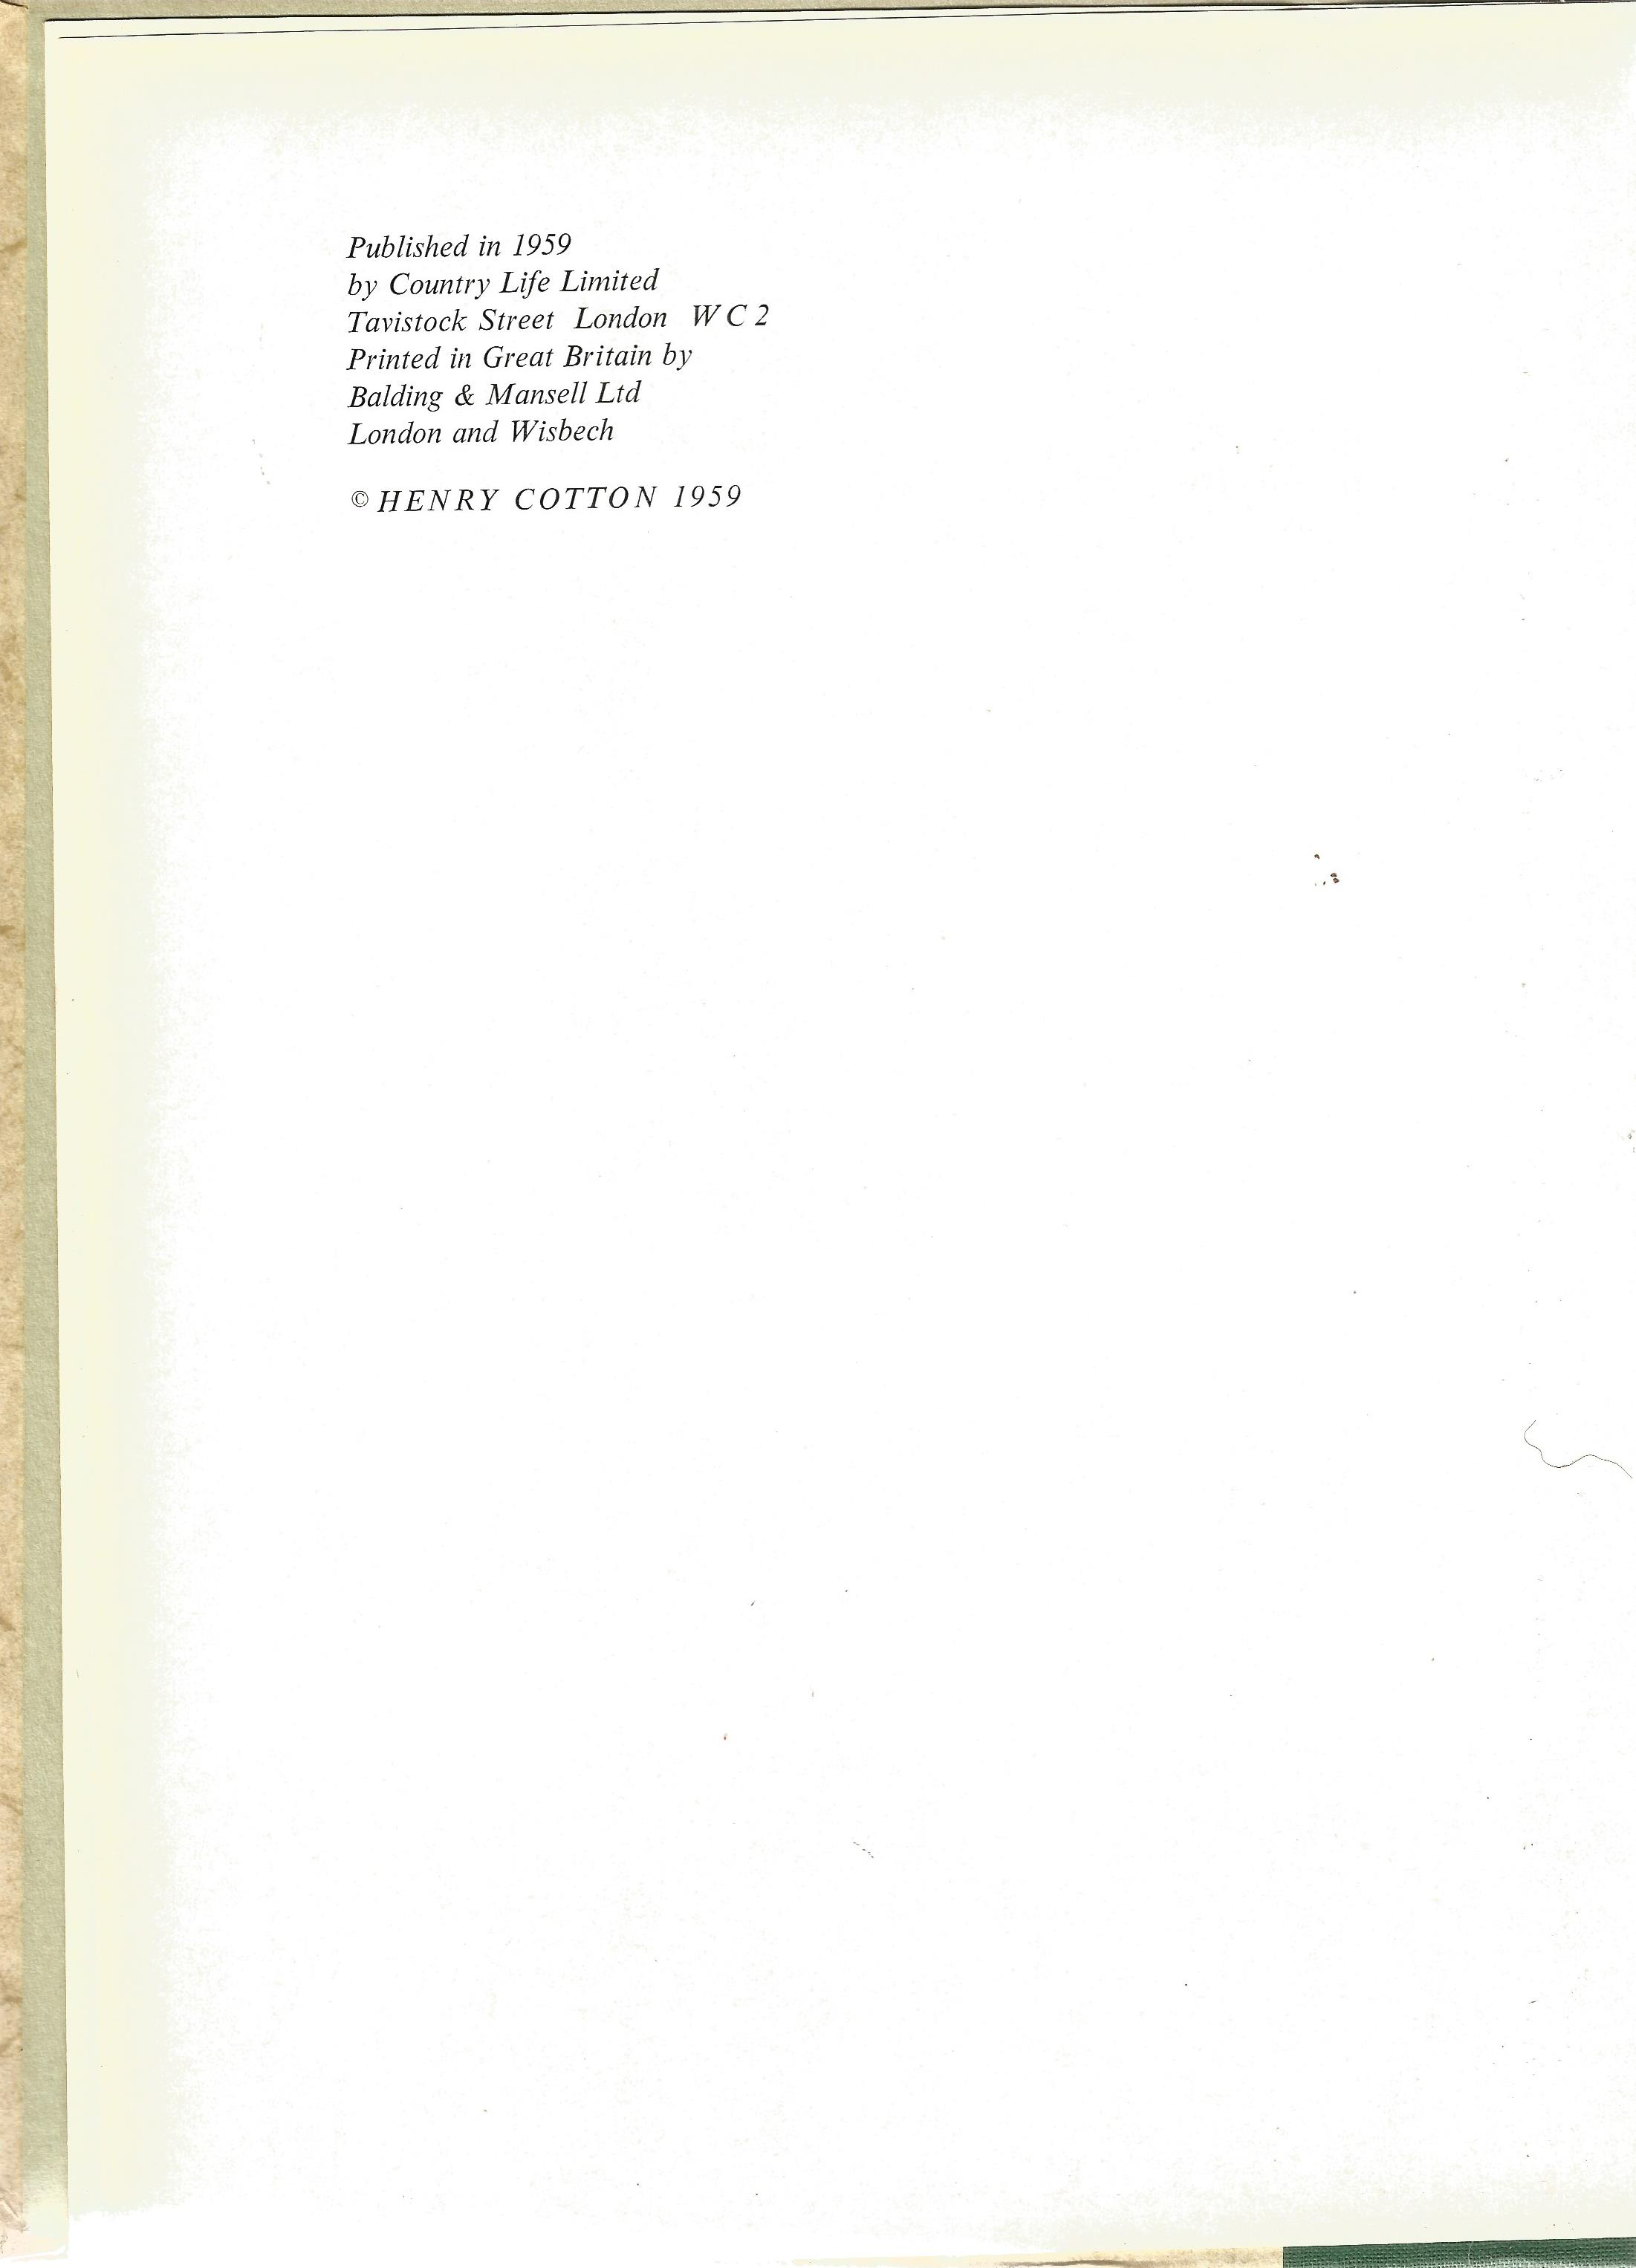 Sir Archibald McIndoe Family Photo Album plus 5 Hardback Books from His personal collection - Image 7 of 23